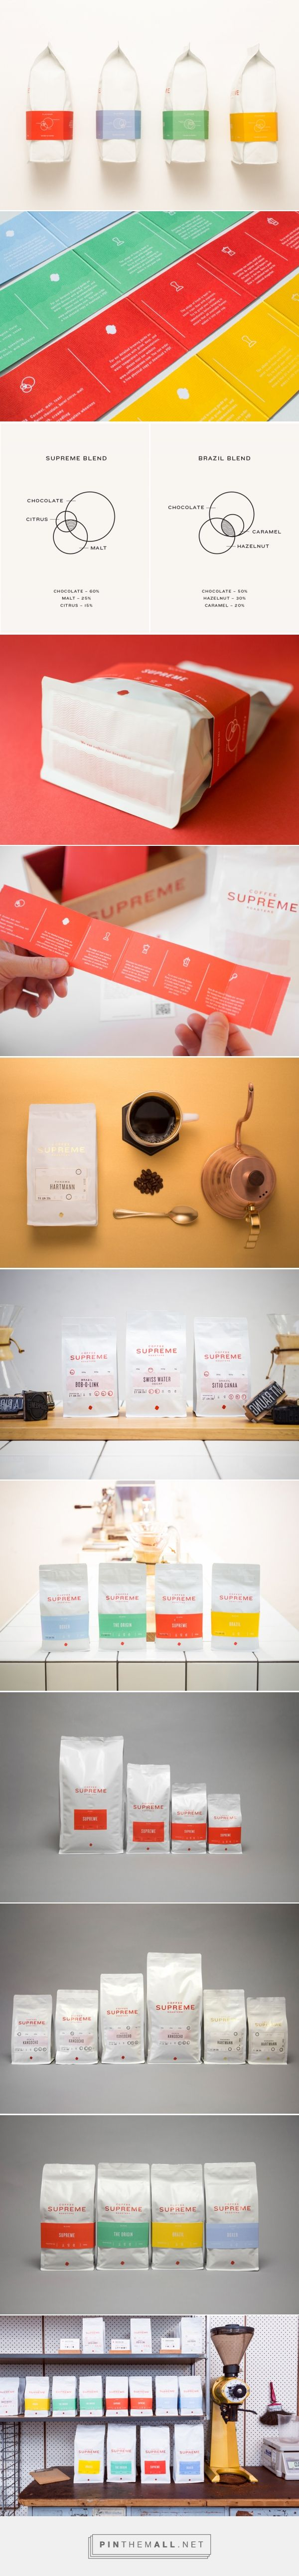 New Packaging for Supreme Coffee by Marx Design - BP&O - created via http://pinthemall.net